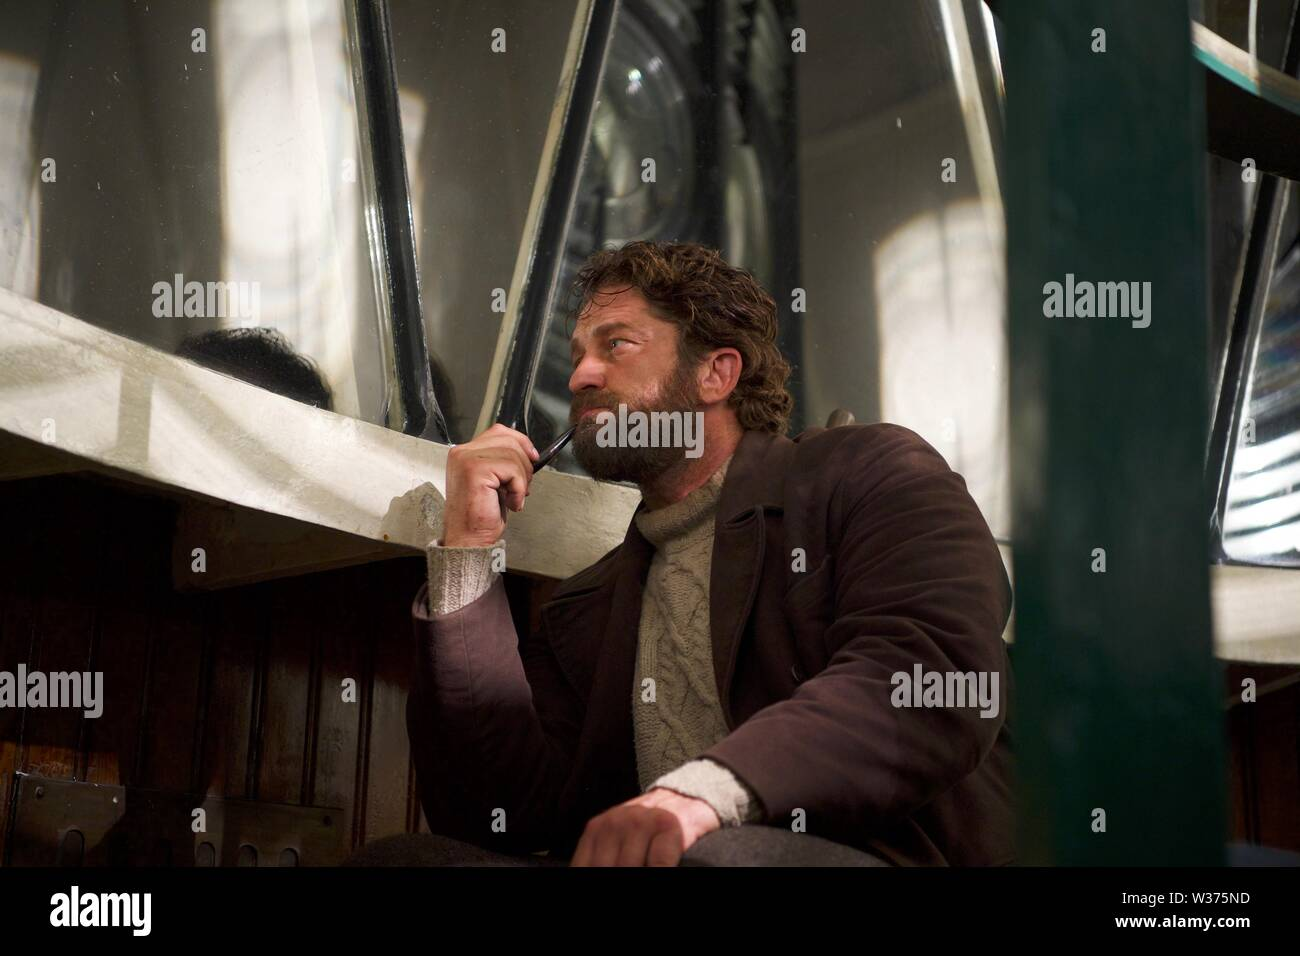 GERARD BUTLER in THE VANISHING (2018)  Credit: Mad As Birds